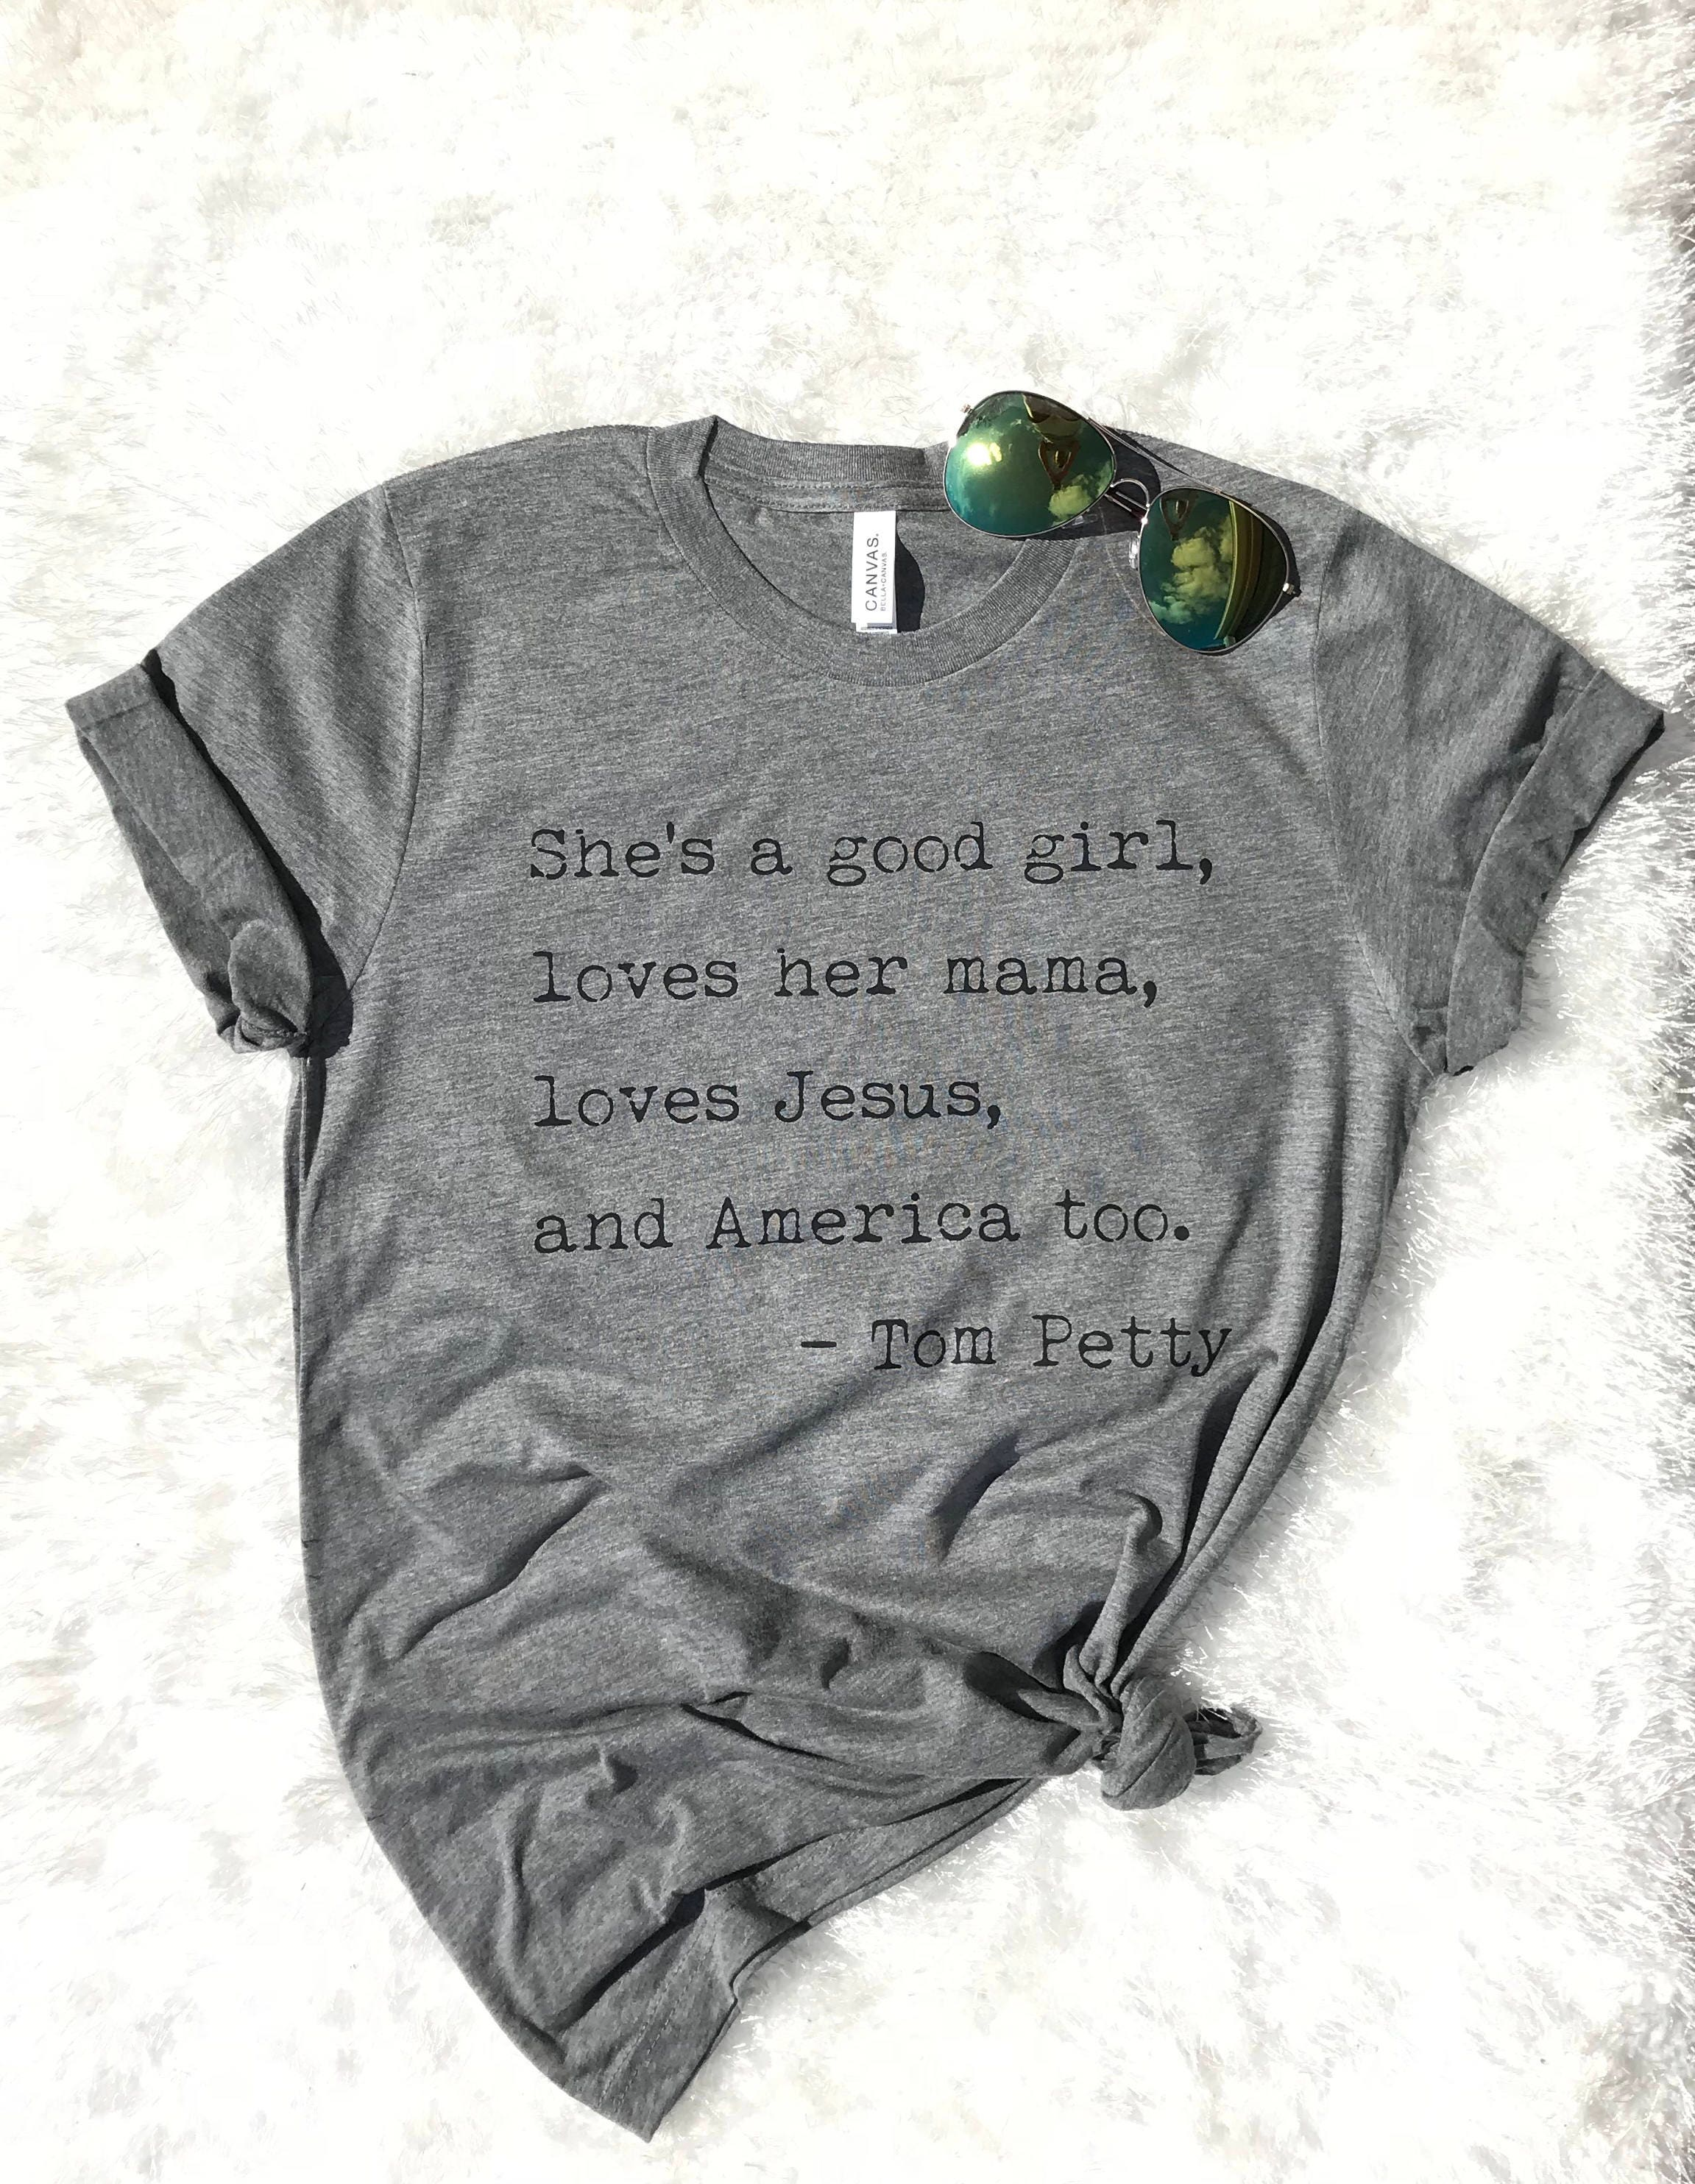 She's a good girl loves her mama Tom petty tshirt American flag